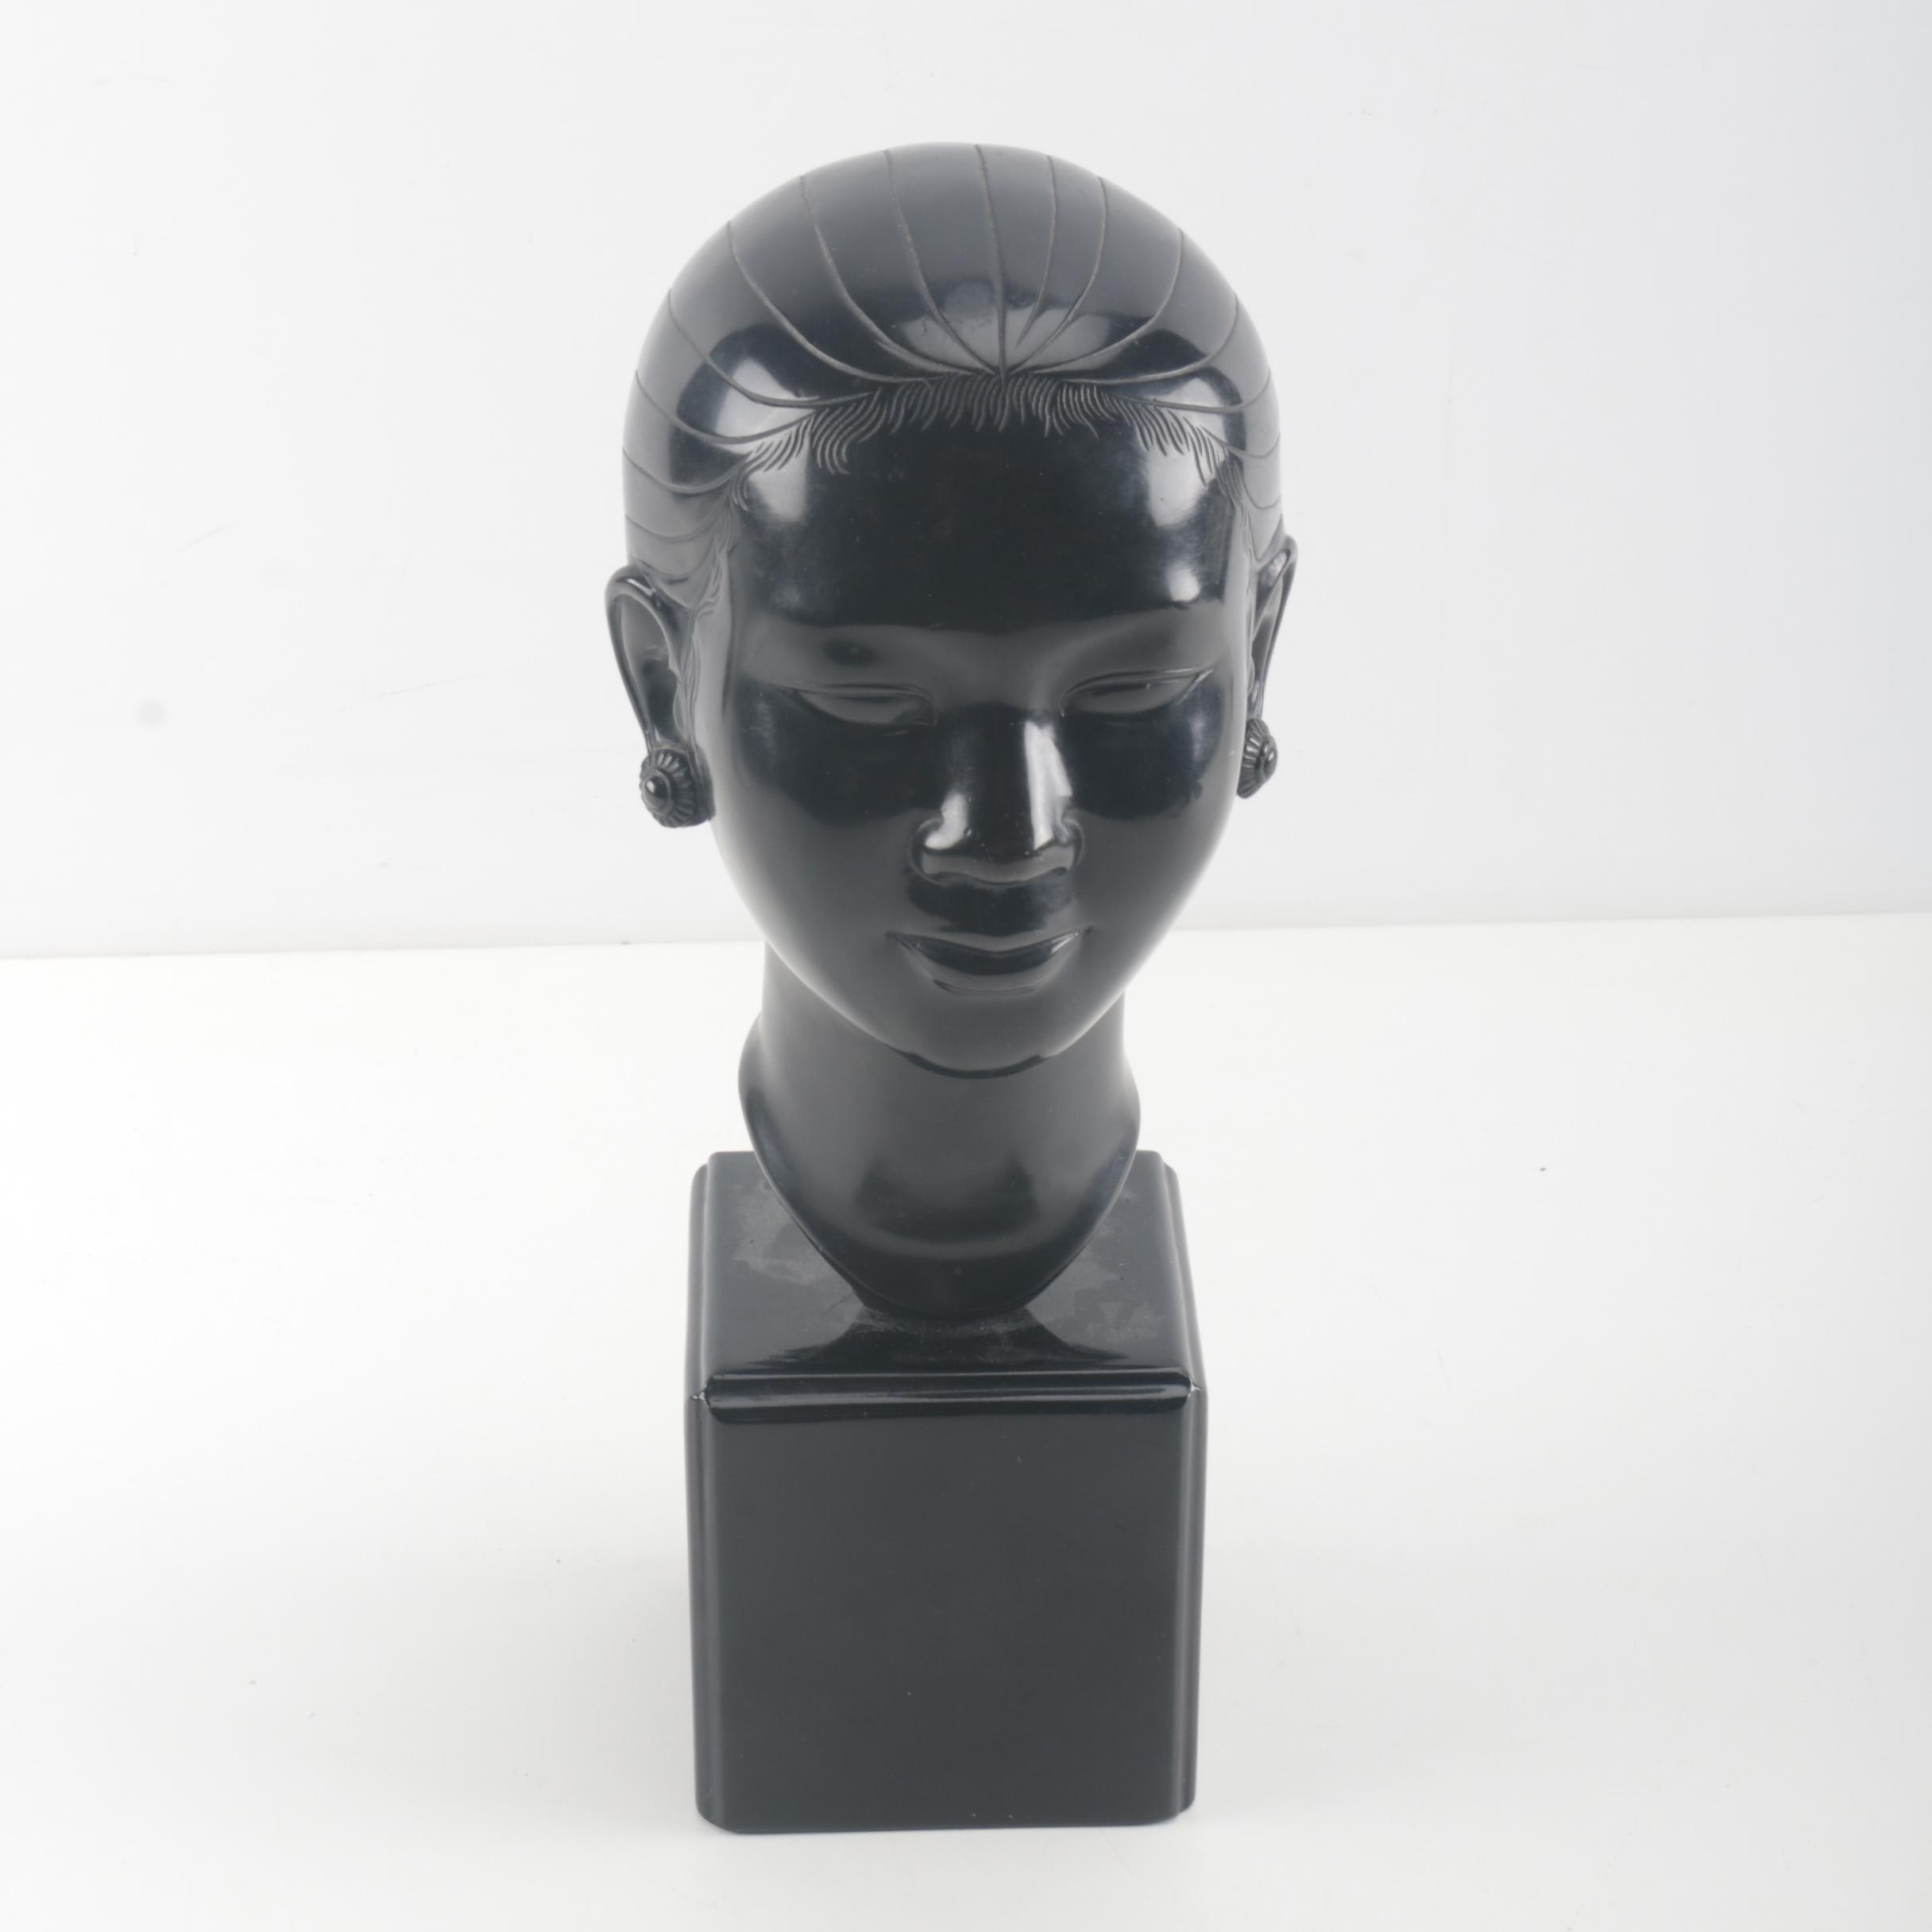 East Asian Inspired Resin Bust of a Woman